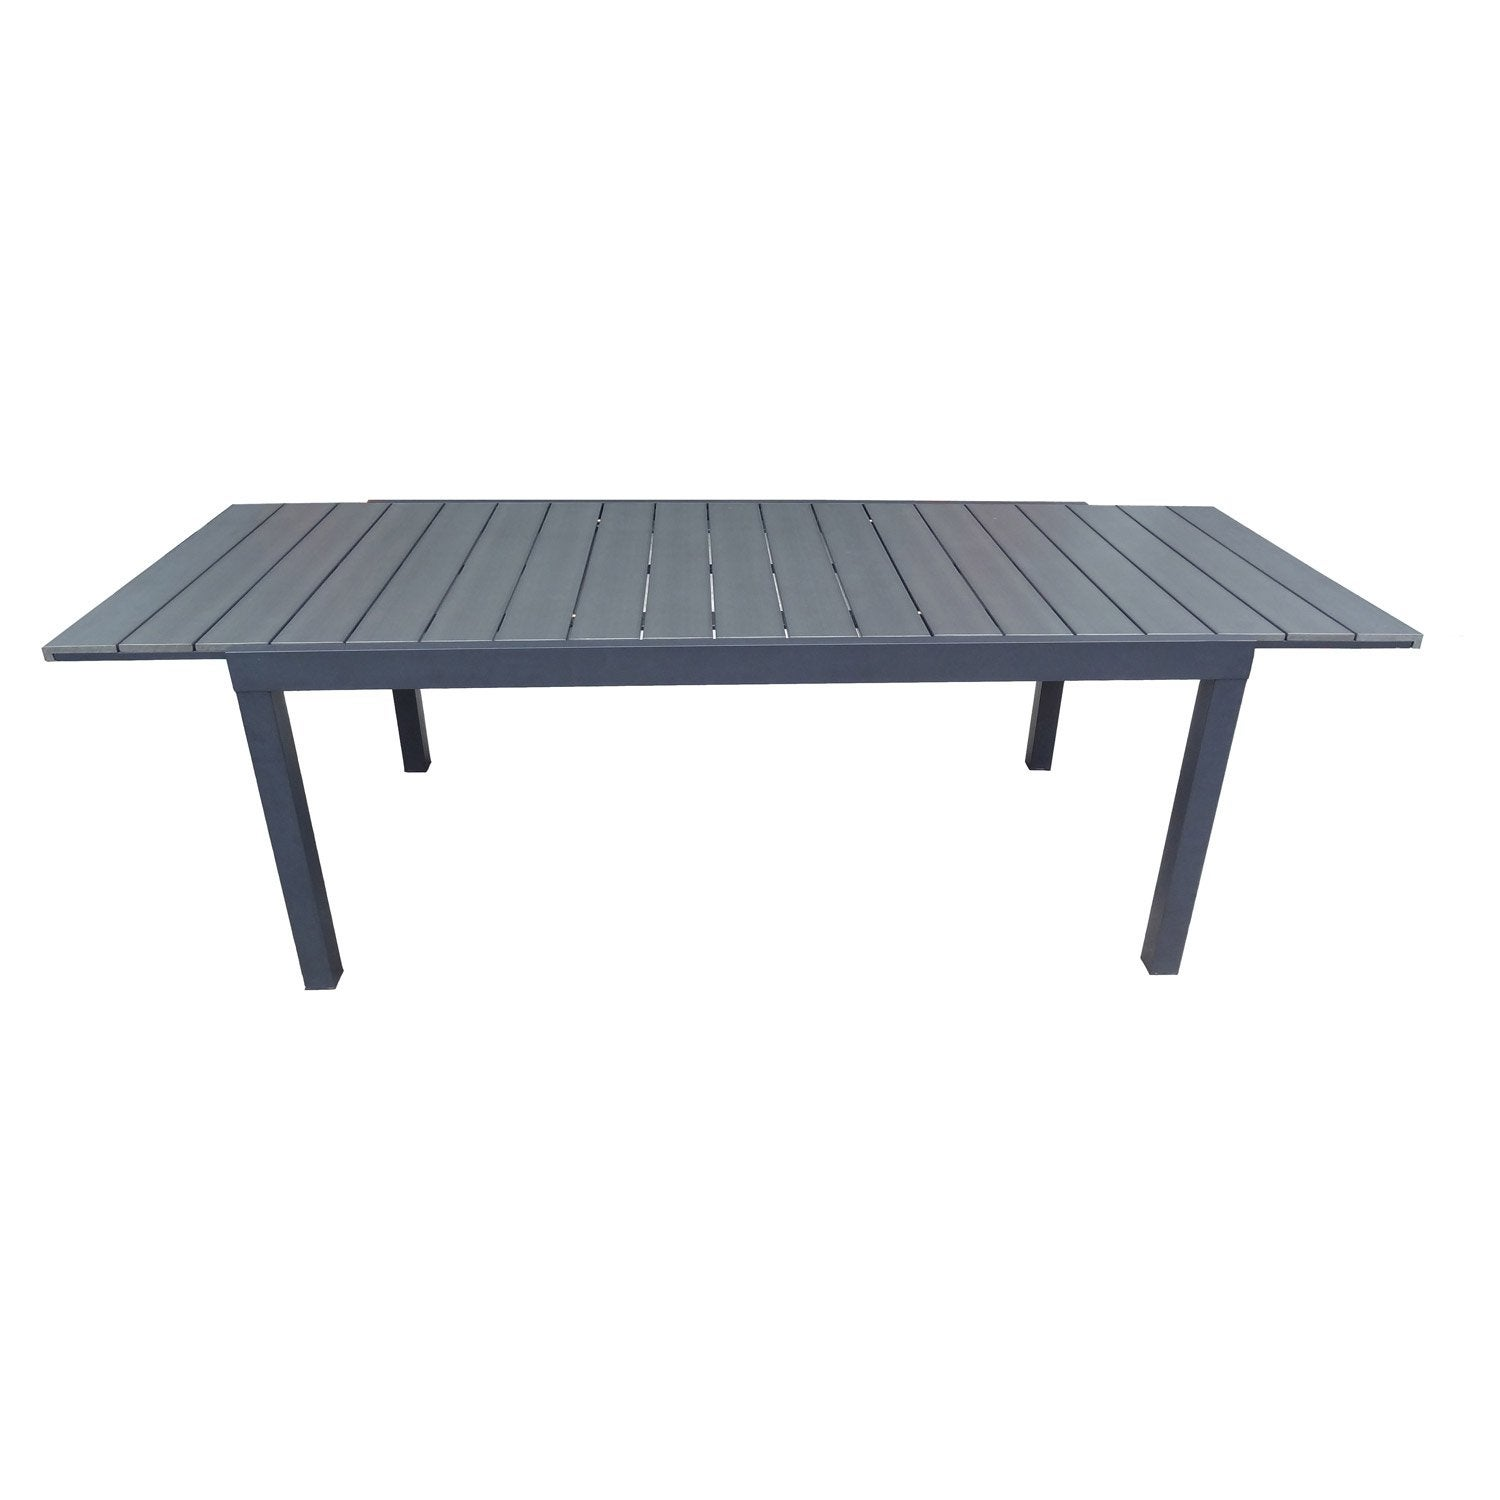 Table de jardin NATERIAL Pratt rectangulaire gris